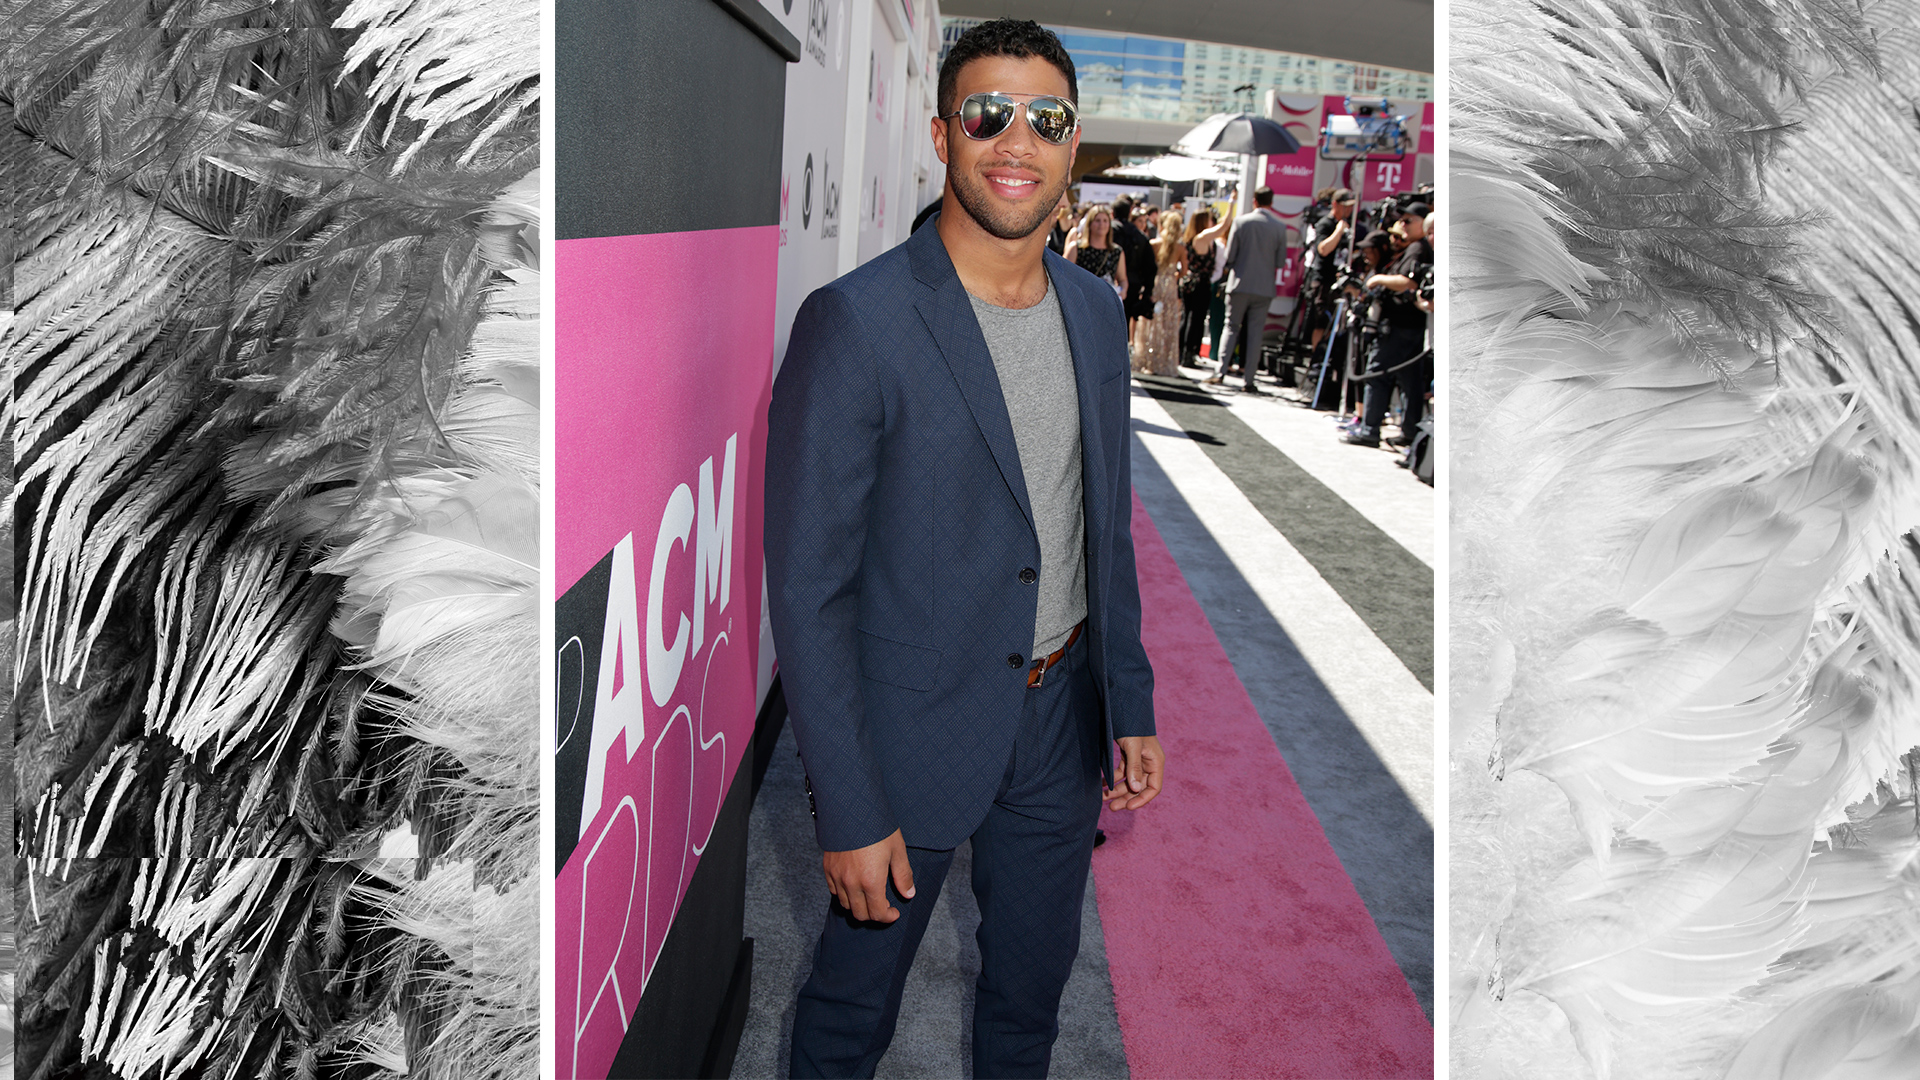 NASCAR driver Bubba Wallace keeps it cool in aviator sunglasses and a crewneck tee.